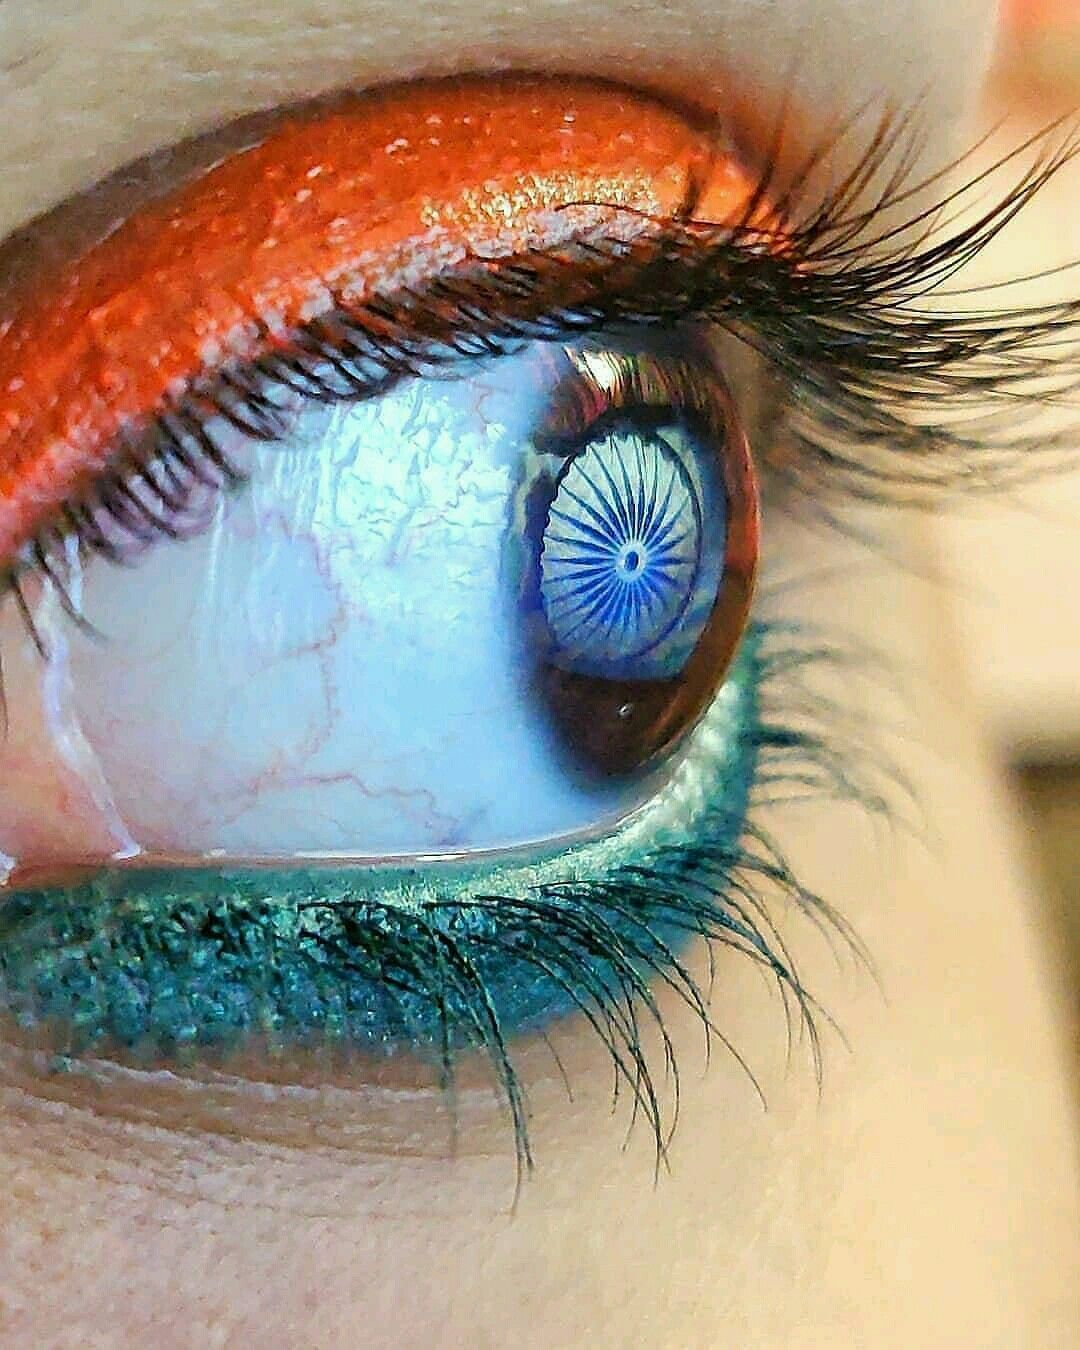 Stylish Eye Design With Indian Flag Color For Independence Day In 2020 Indian Flag Images Indian Flag Colors Indian Flag